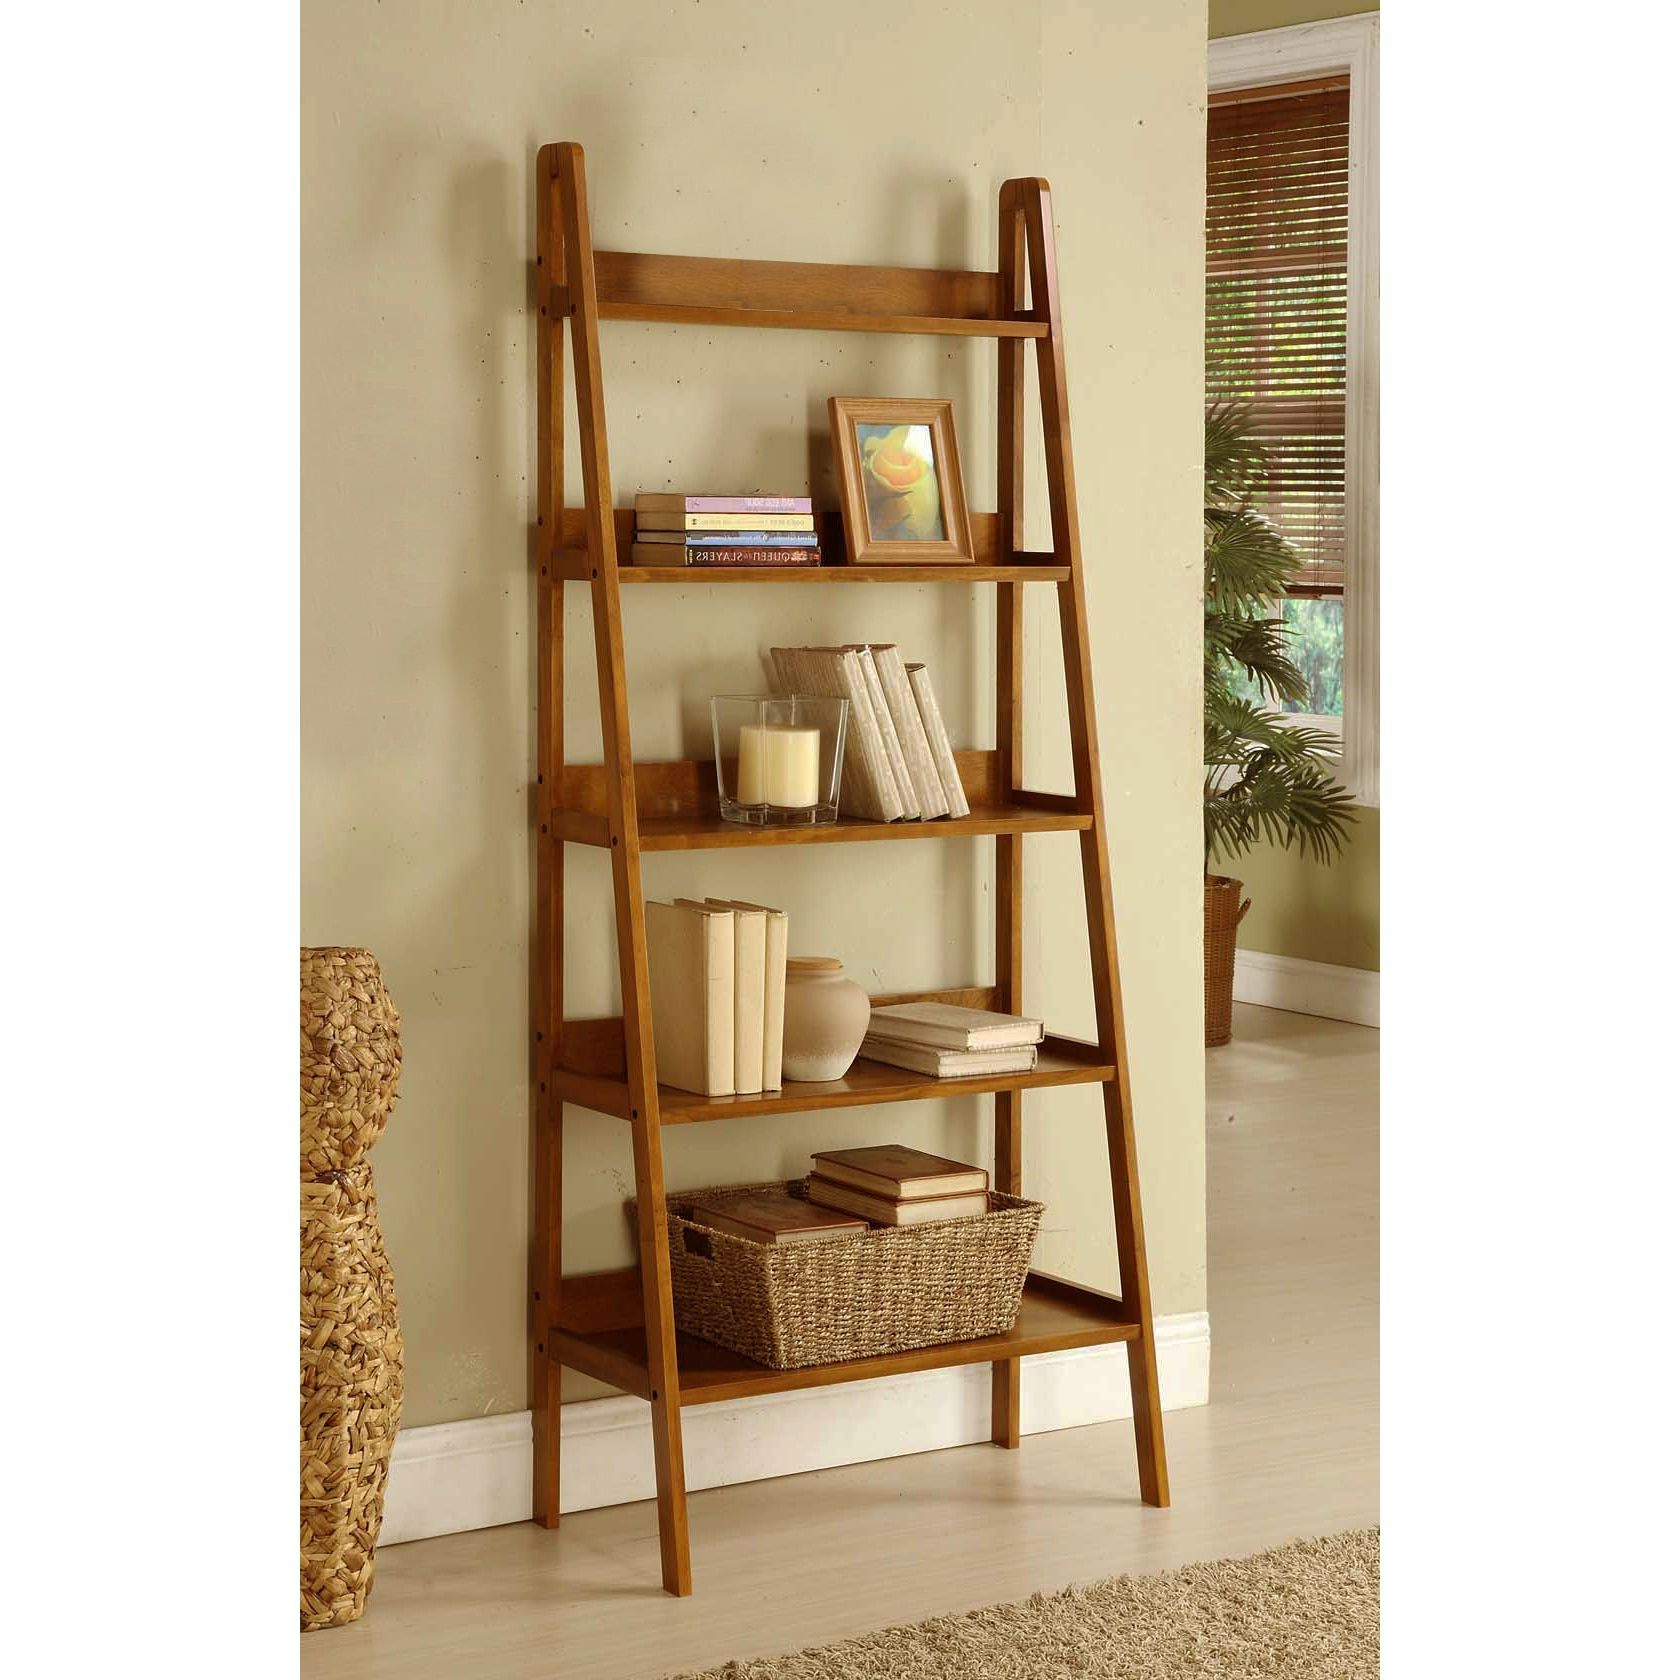 Massena Ladder Bookcases In Fashionable Contemporary Mahogany Leaning Ladder Shelf Bookcase (View 11 of 20)